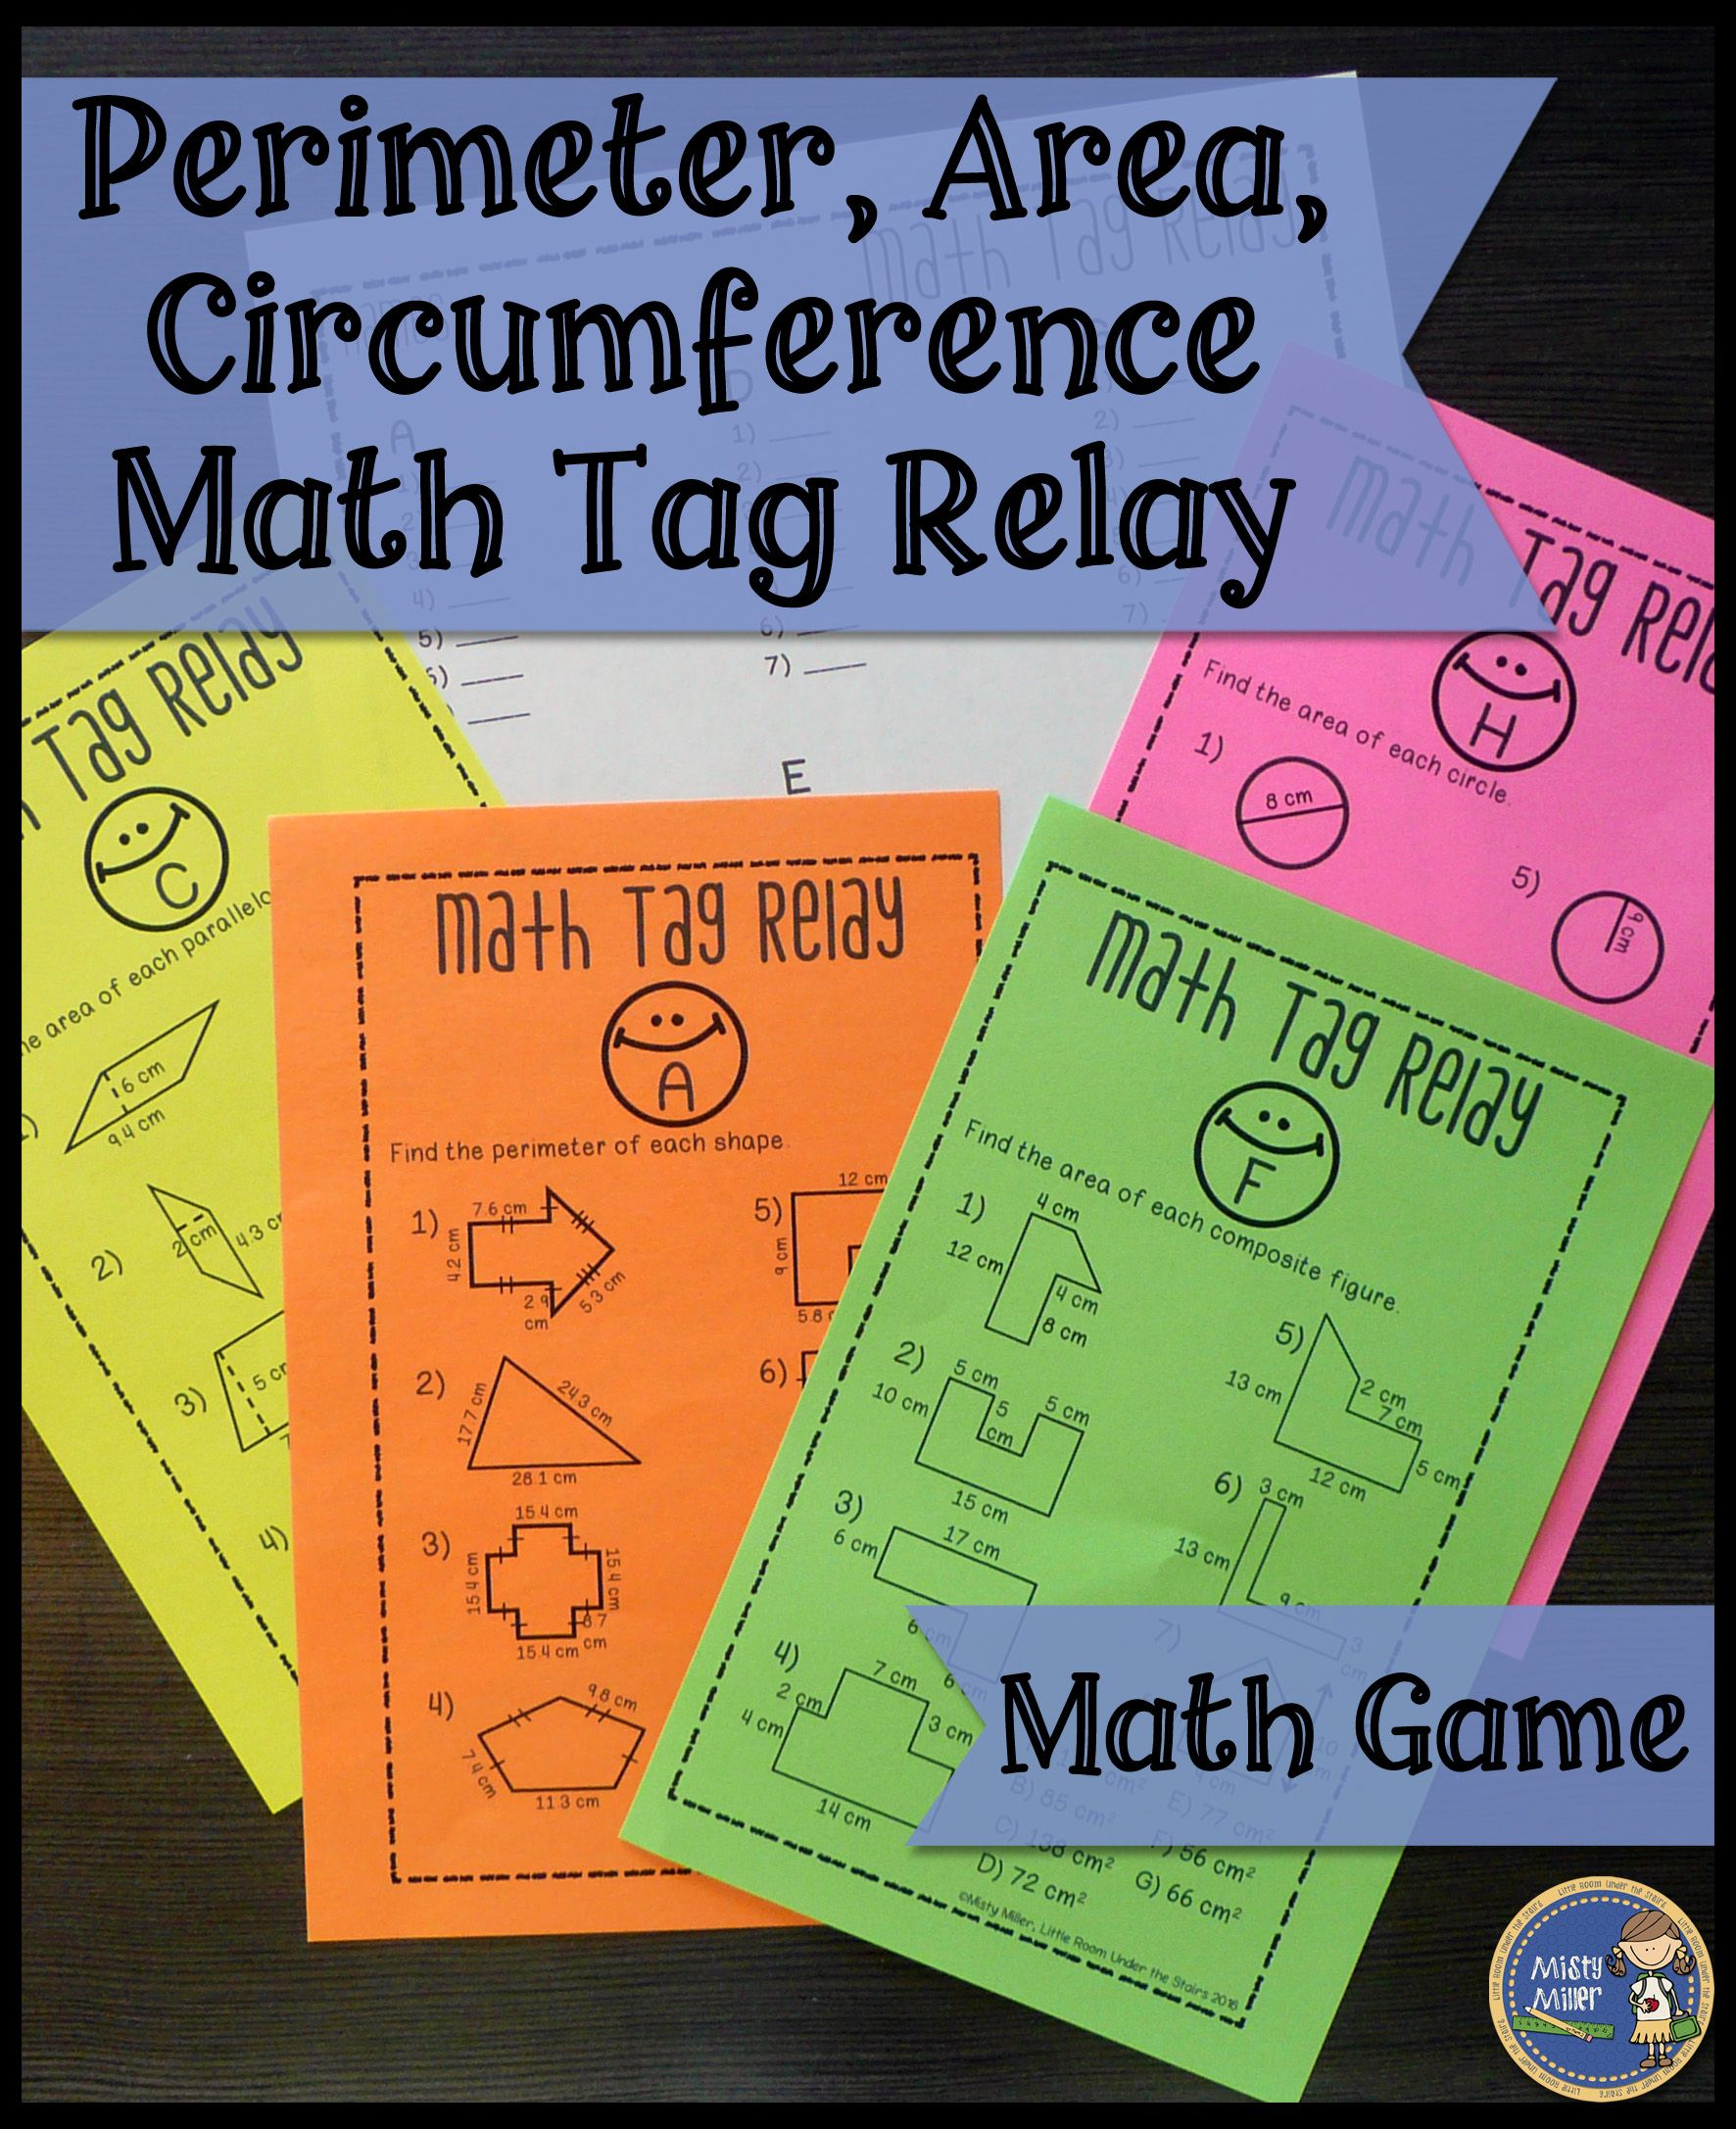 Perimeter Area Circumference Math Tag Relay